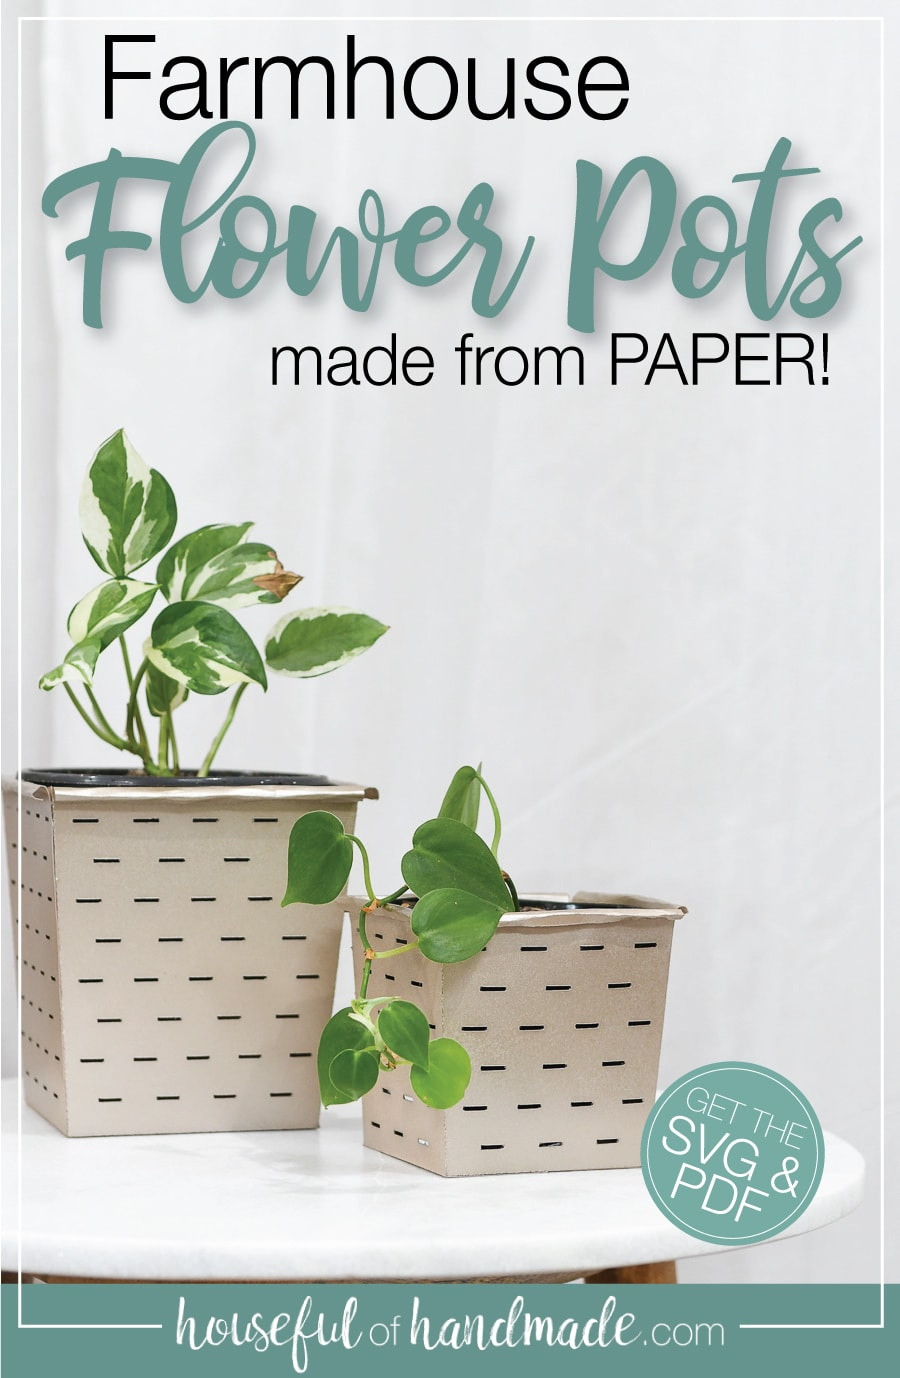 Picture of farmhouse flower pots with text overlay.